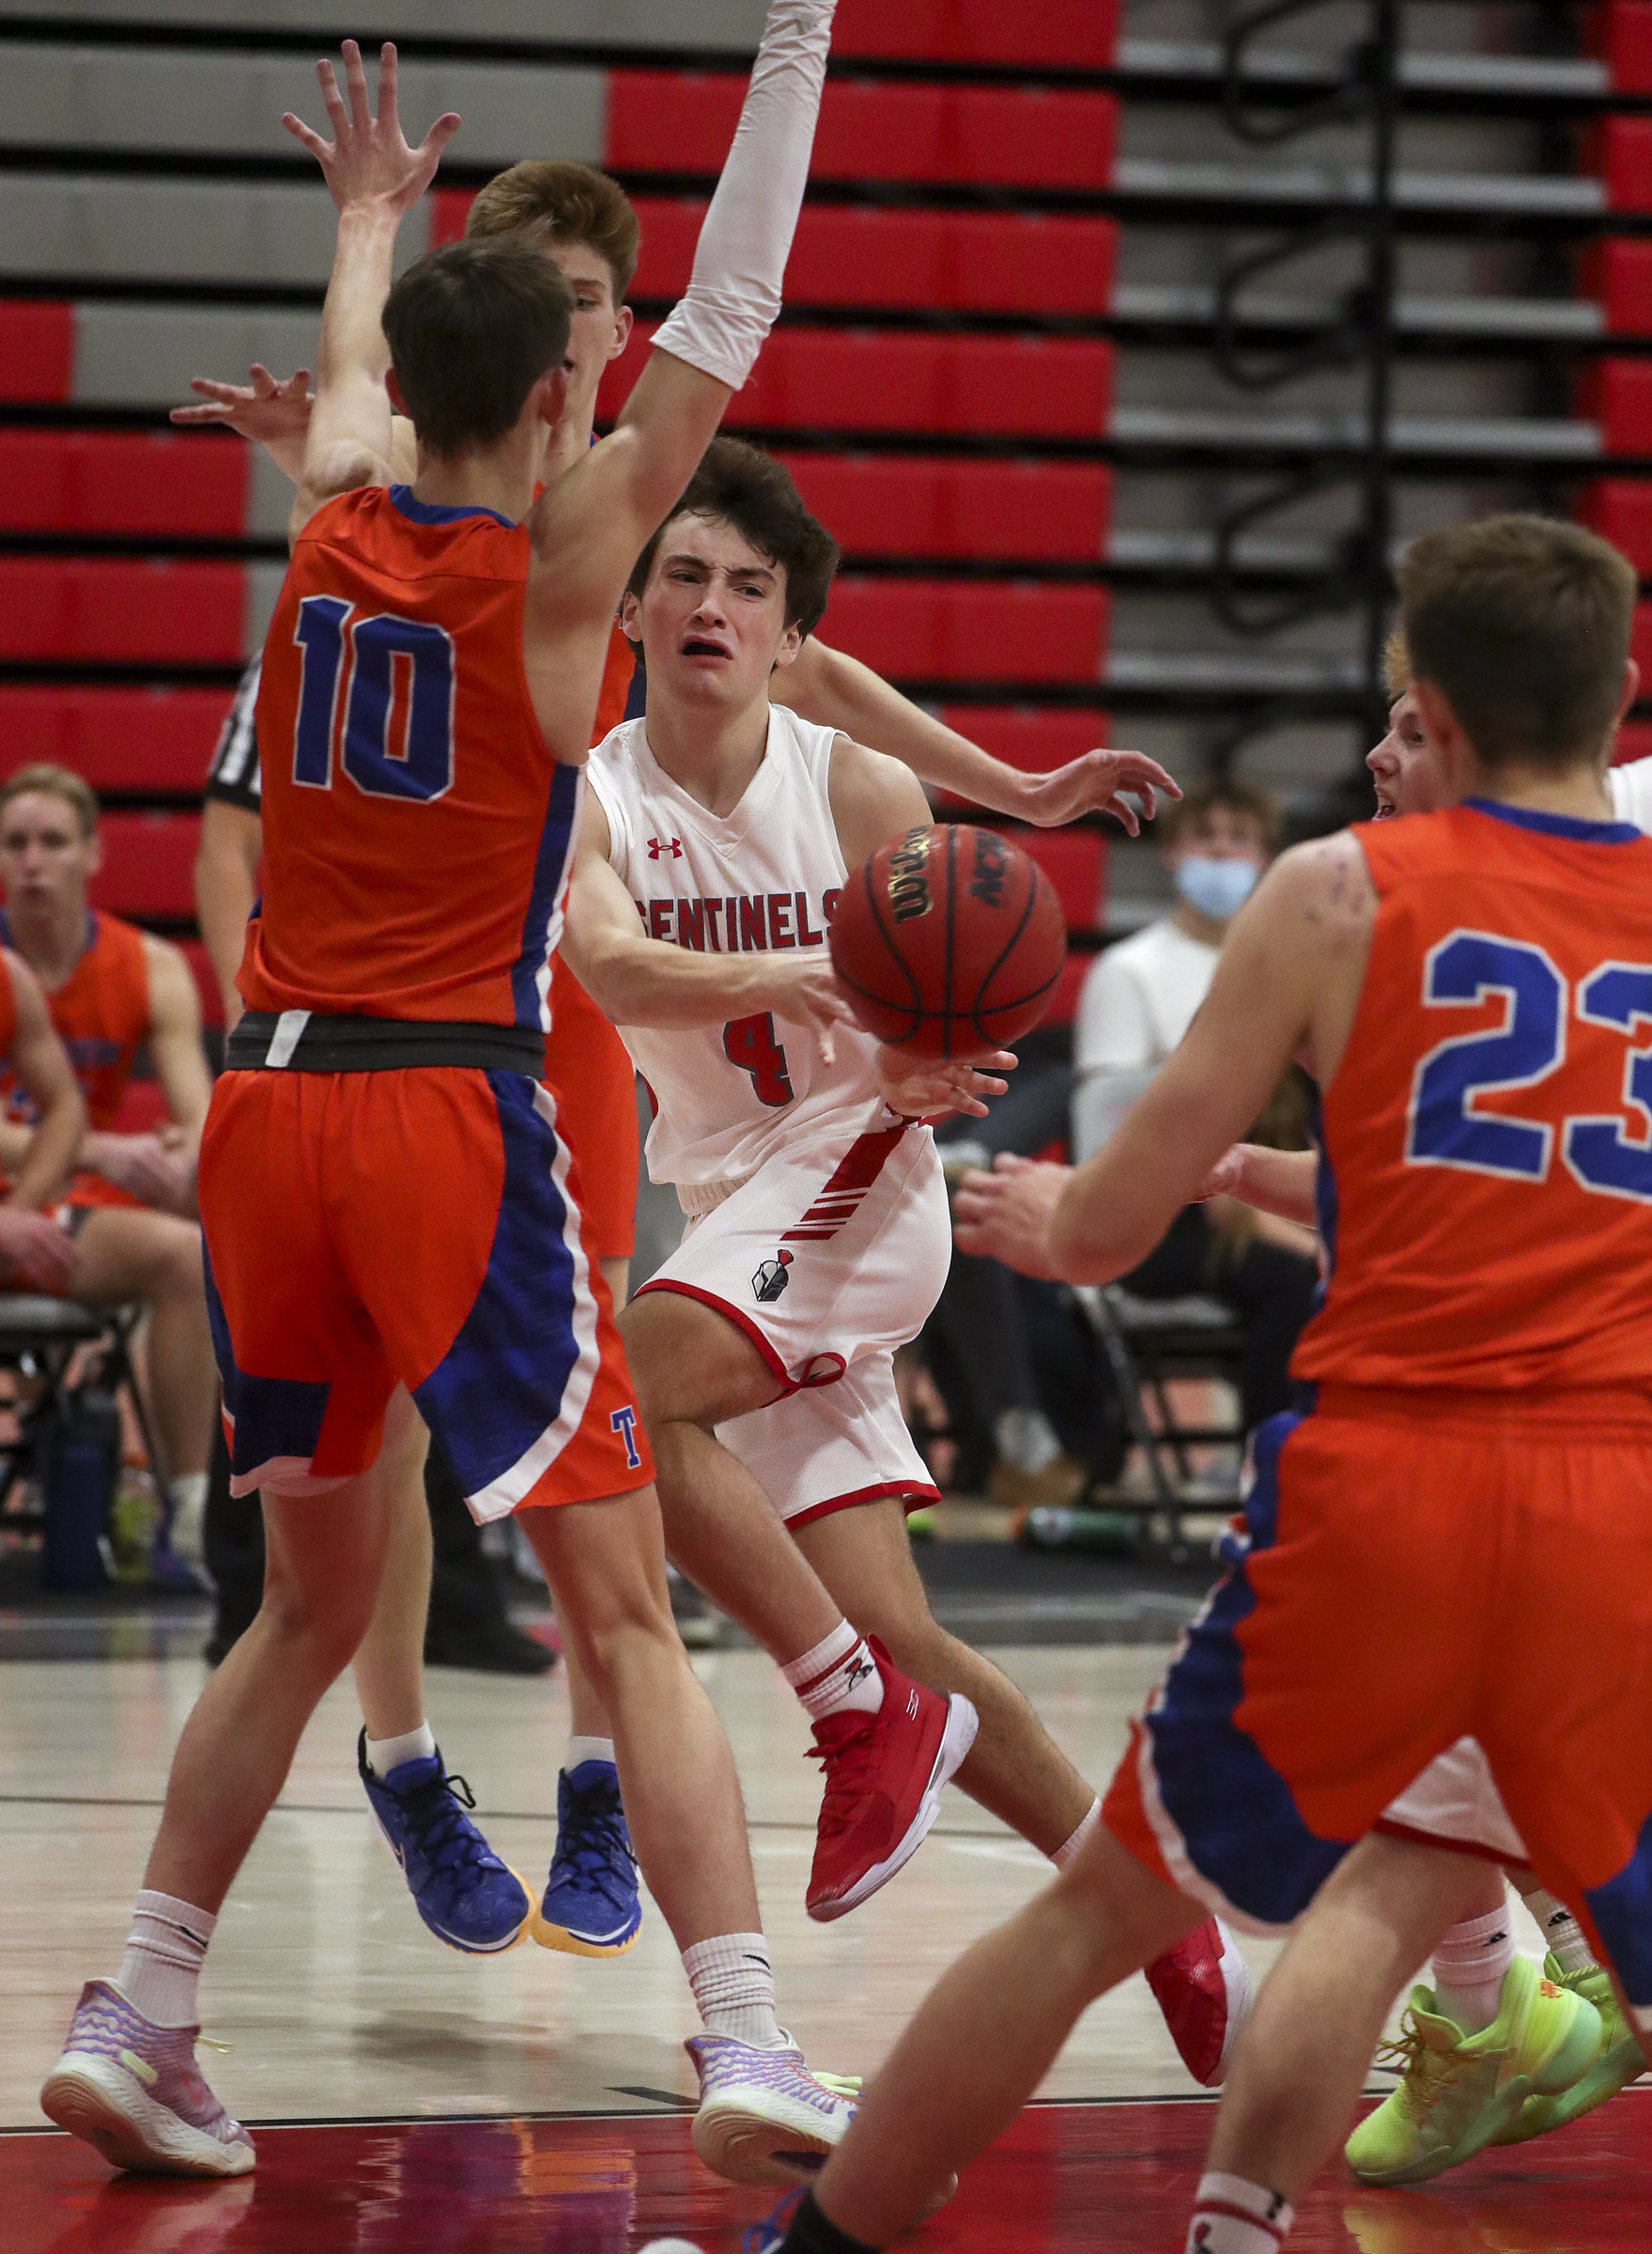 Mountain Ridge guard Kyle Carley passes around the defense of Timpview forward Jake Wahlin during a basketball game at Mountain Ridge High School in Herriman on Tuesday, Jan. 19, 2021.